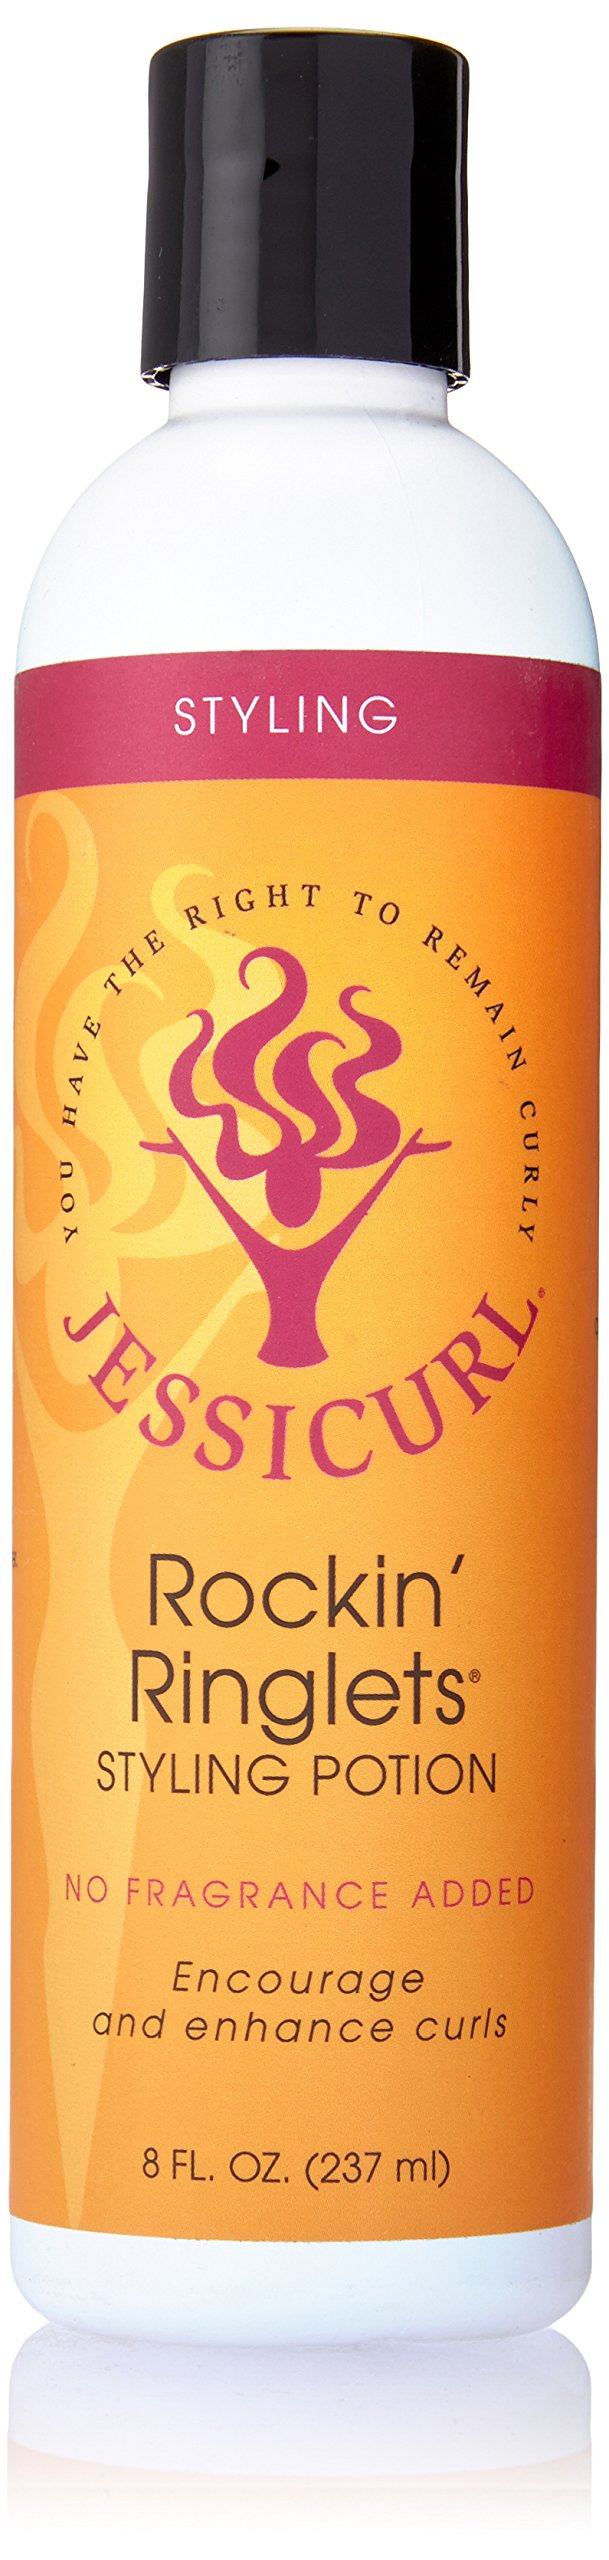 Jessicurl Rockin Ringlets Styling Potion, No Fragrance, 8 Ounce by Jessicurl Llc.